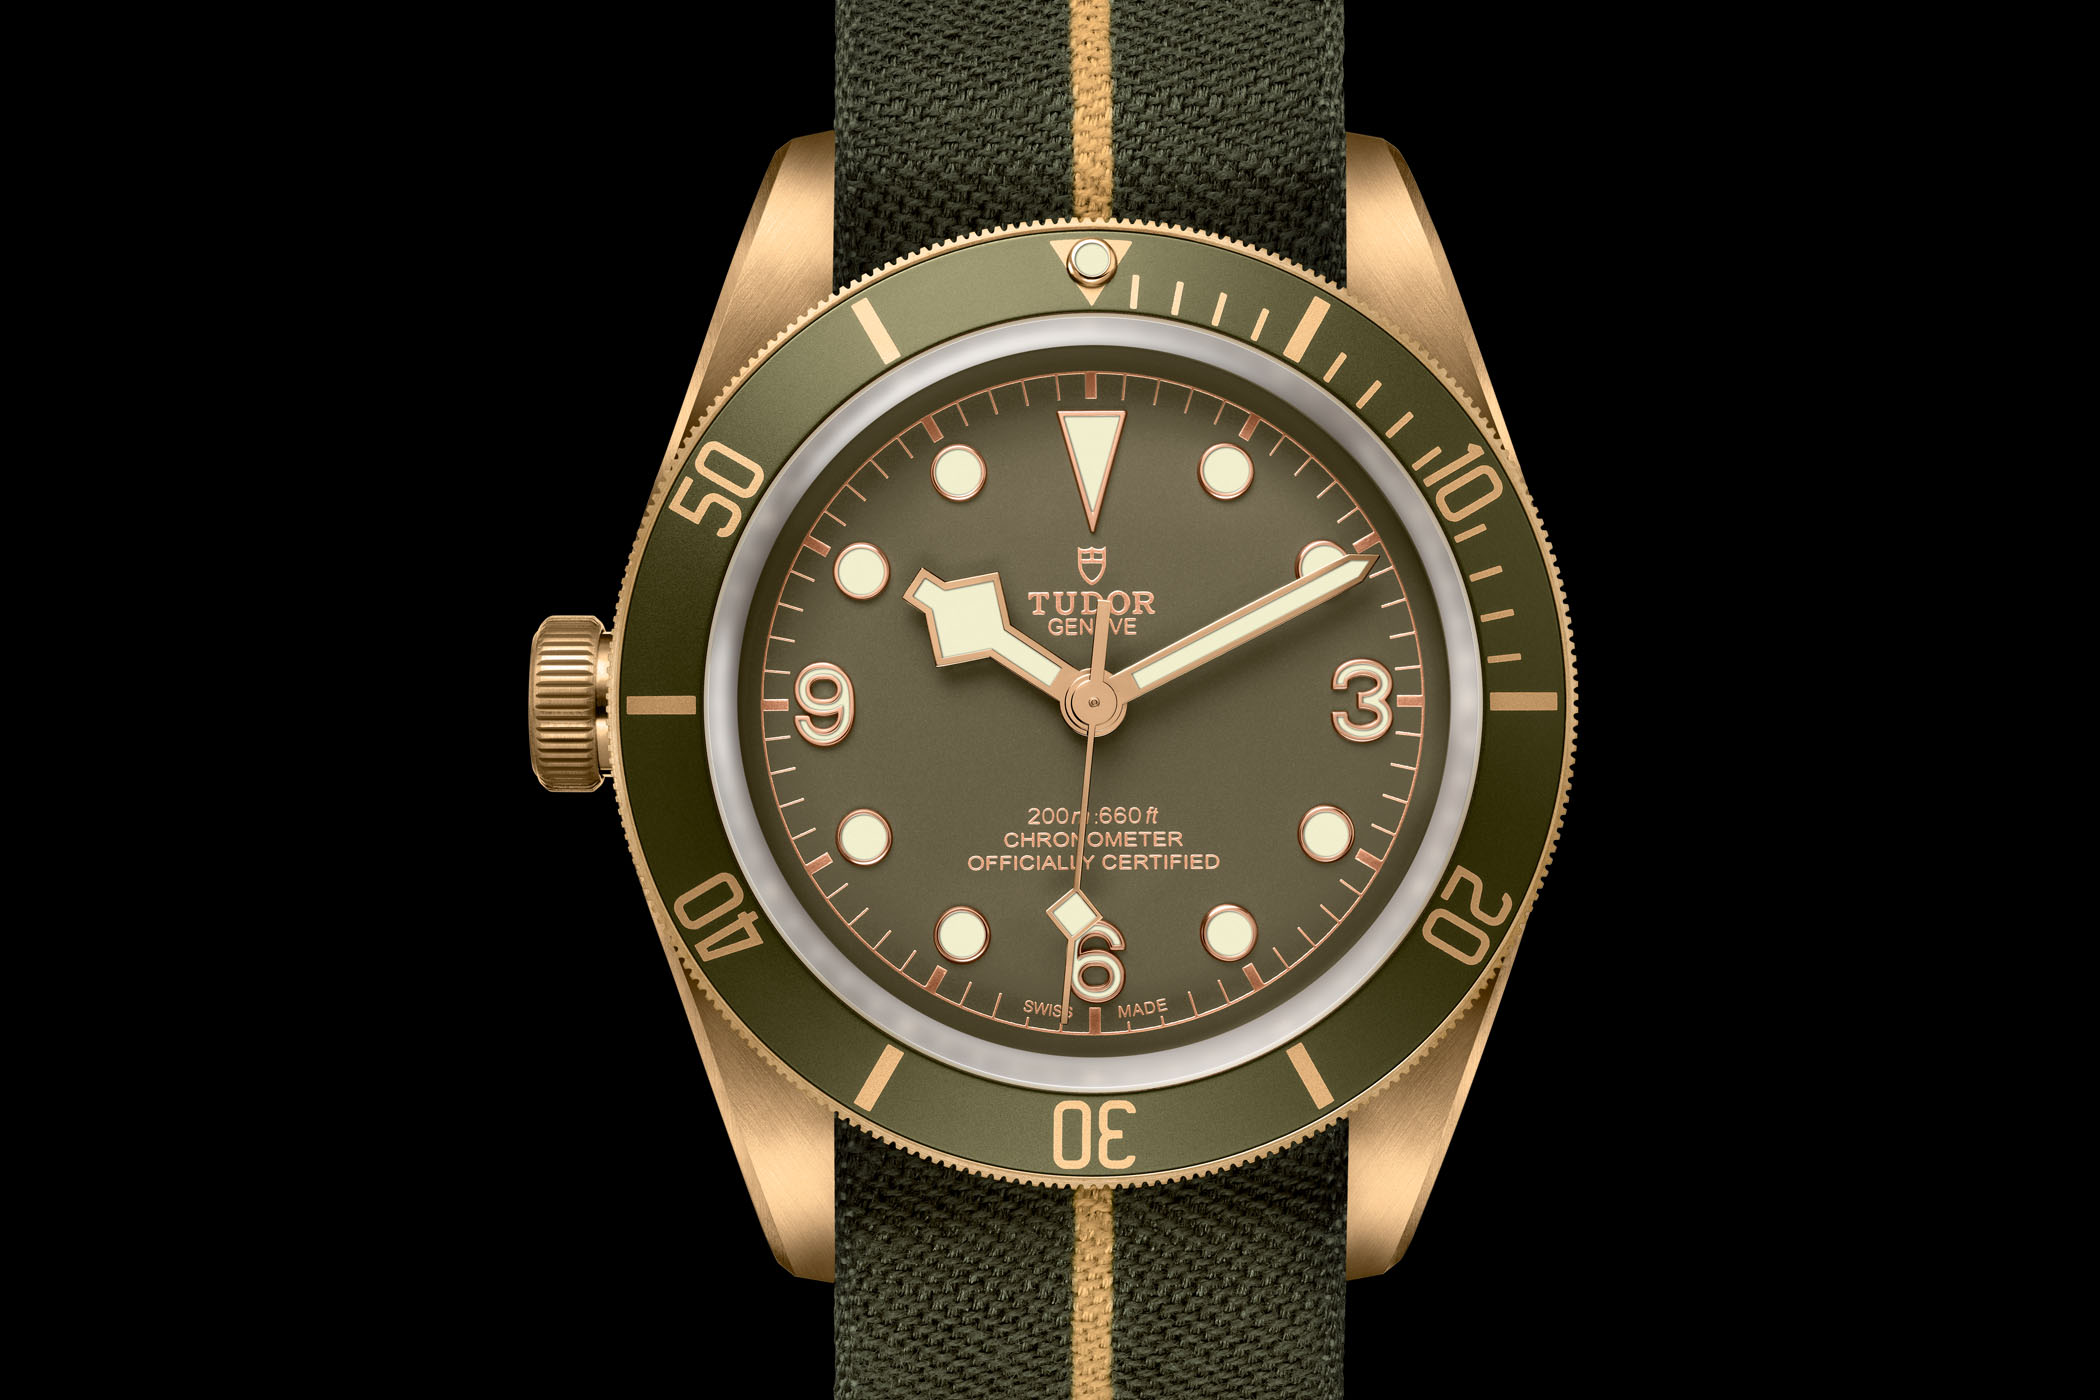 Tudor Black Bay Bronze One Lhd Khaki Green Only Watch 2017 on house layout